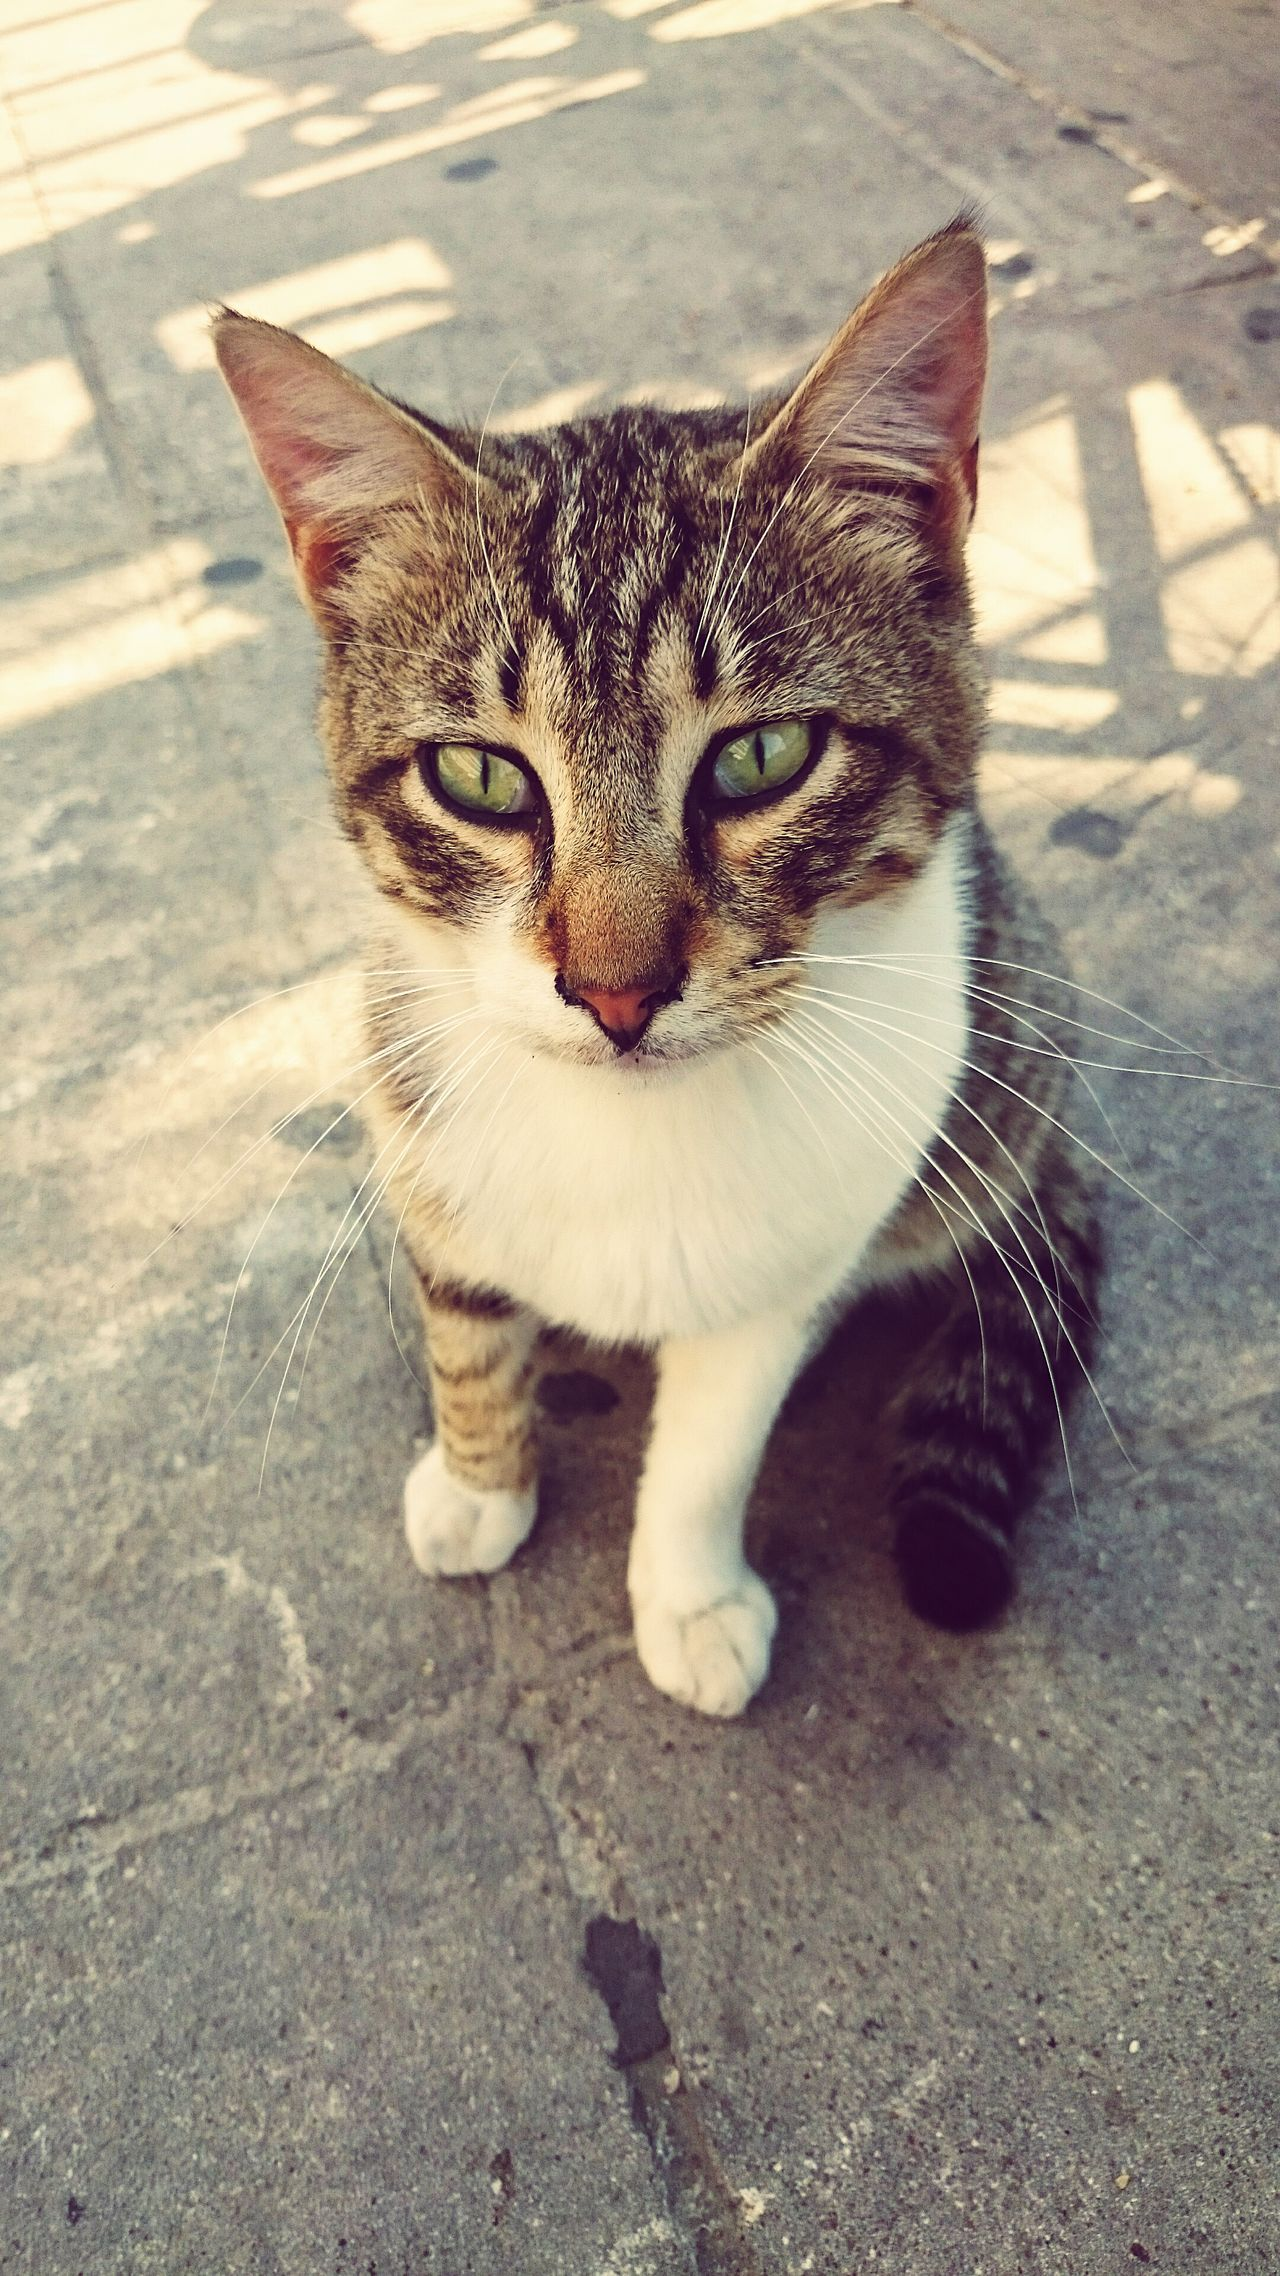 Animal Photography Street Cats Portrait Limassol Cyprus